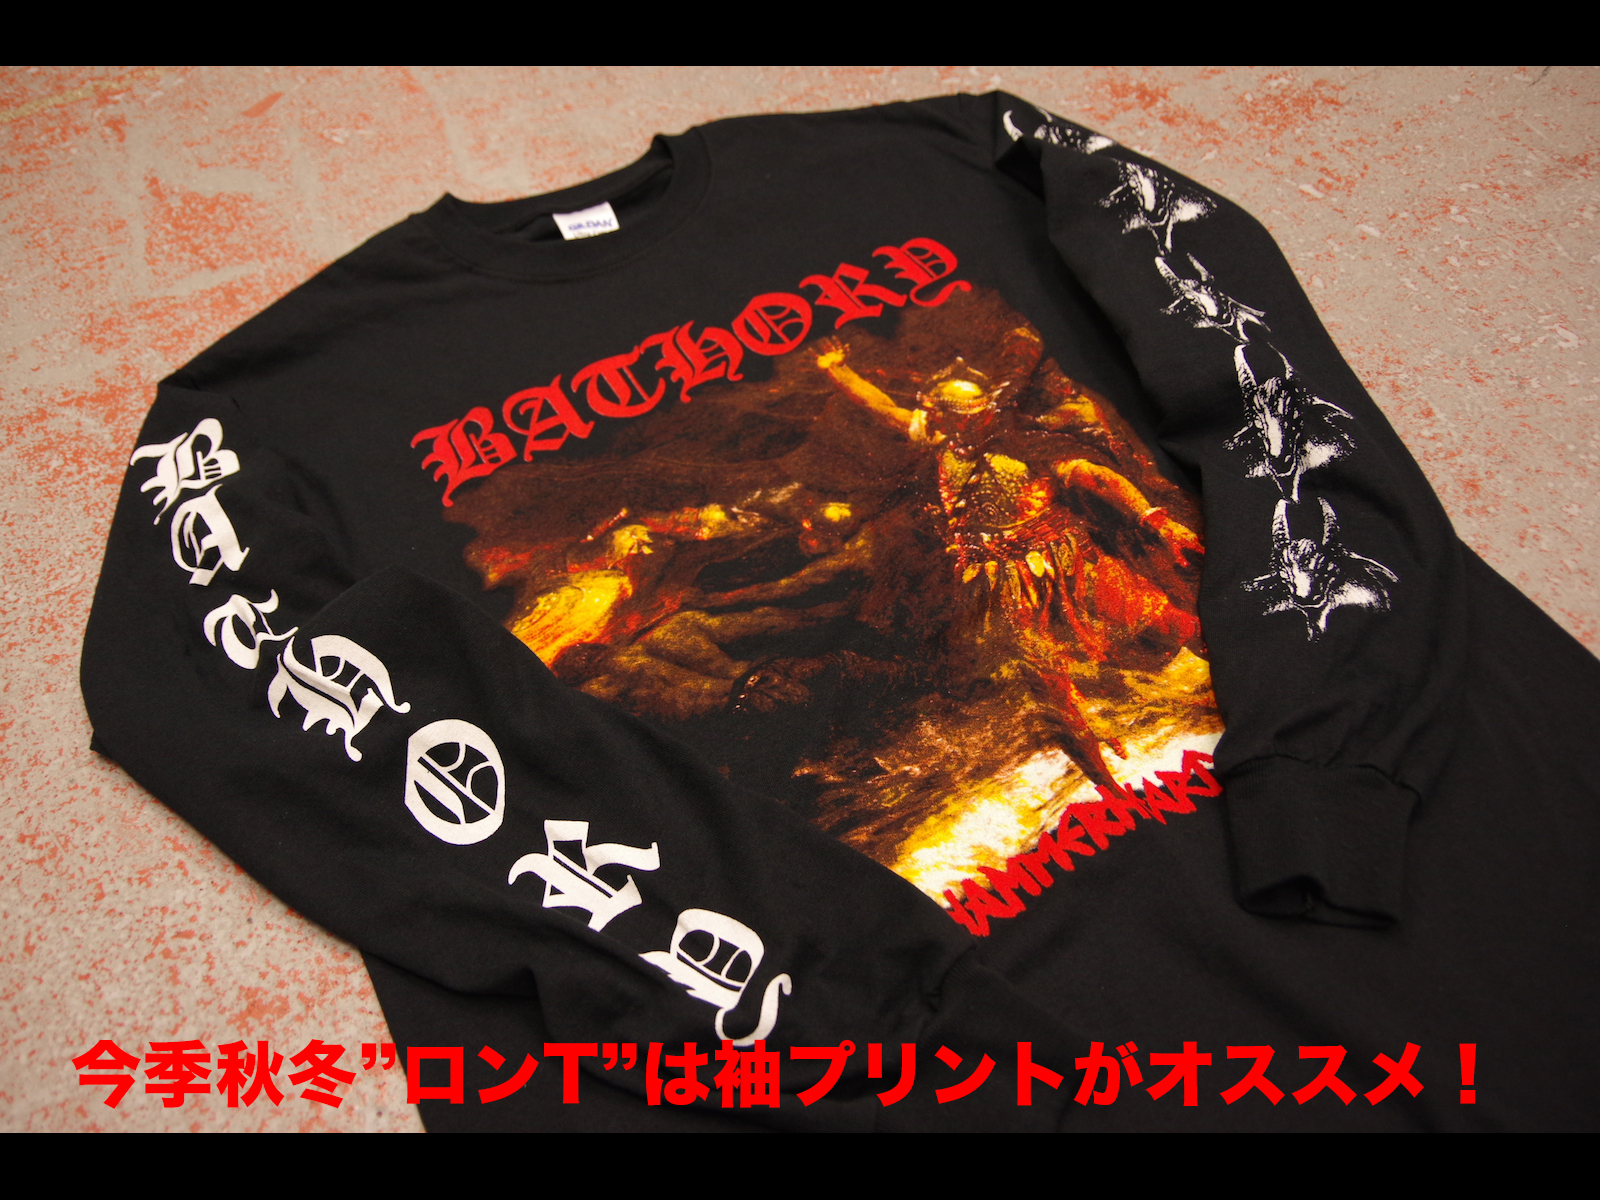 [NEW ITEM] – BATHORY LONGSLEEVE T-SHIRTS